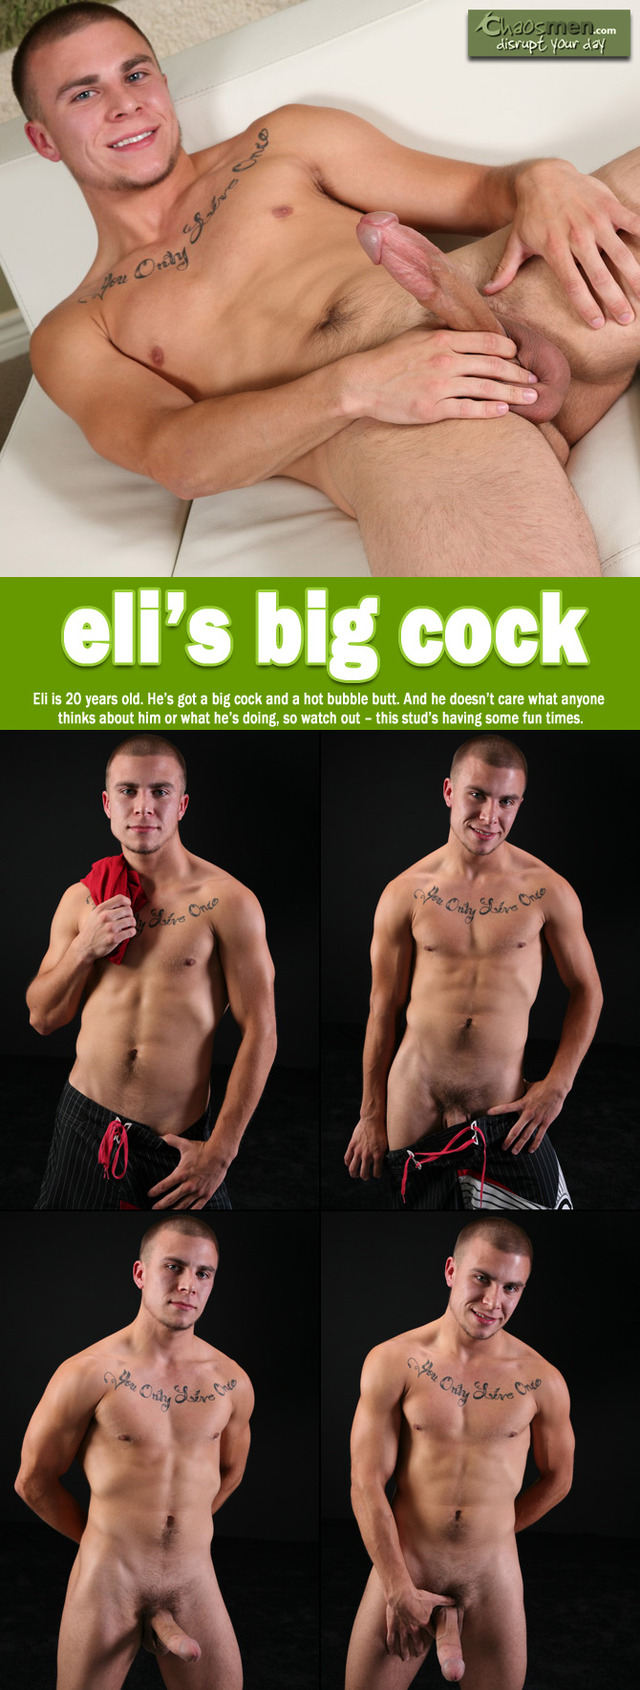 Big dick Male Gay Porn men chaos bottom collages eli chaosmen dicked